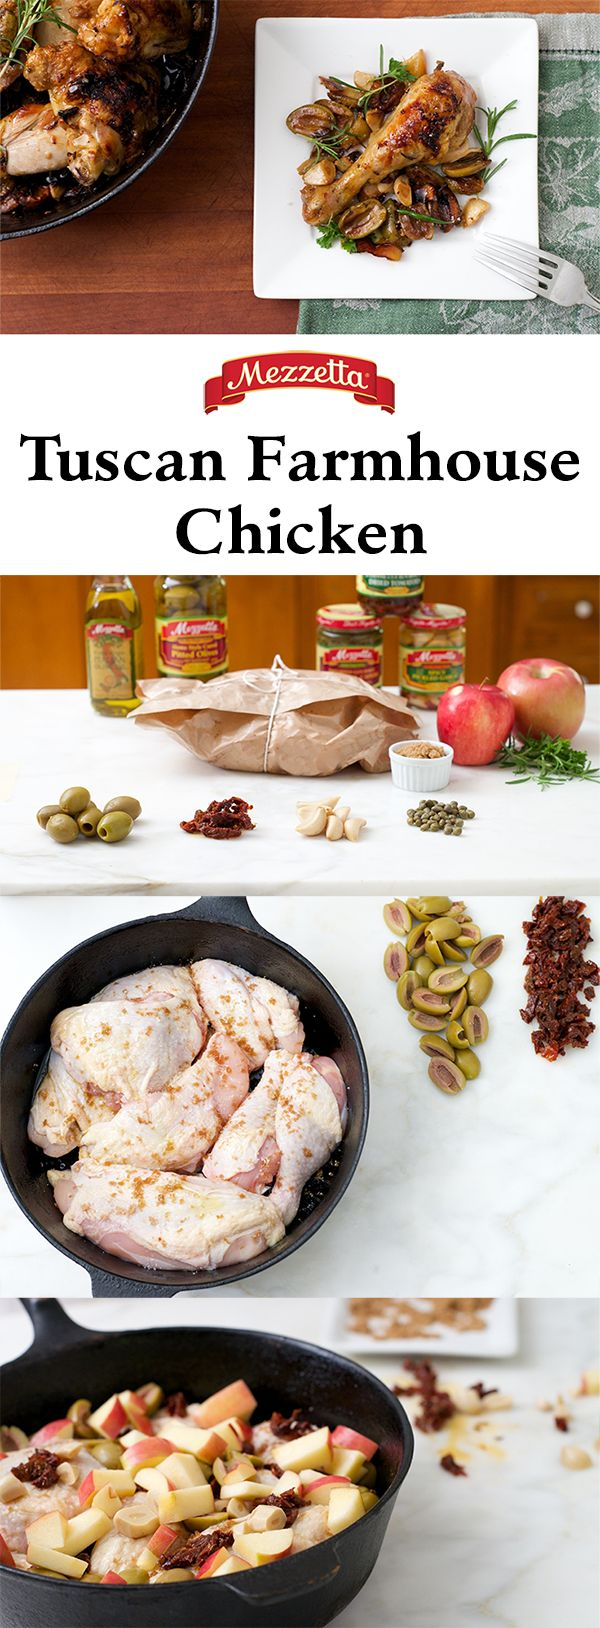 Mezzetta Tuscan Farmhouse Chicken